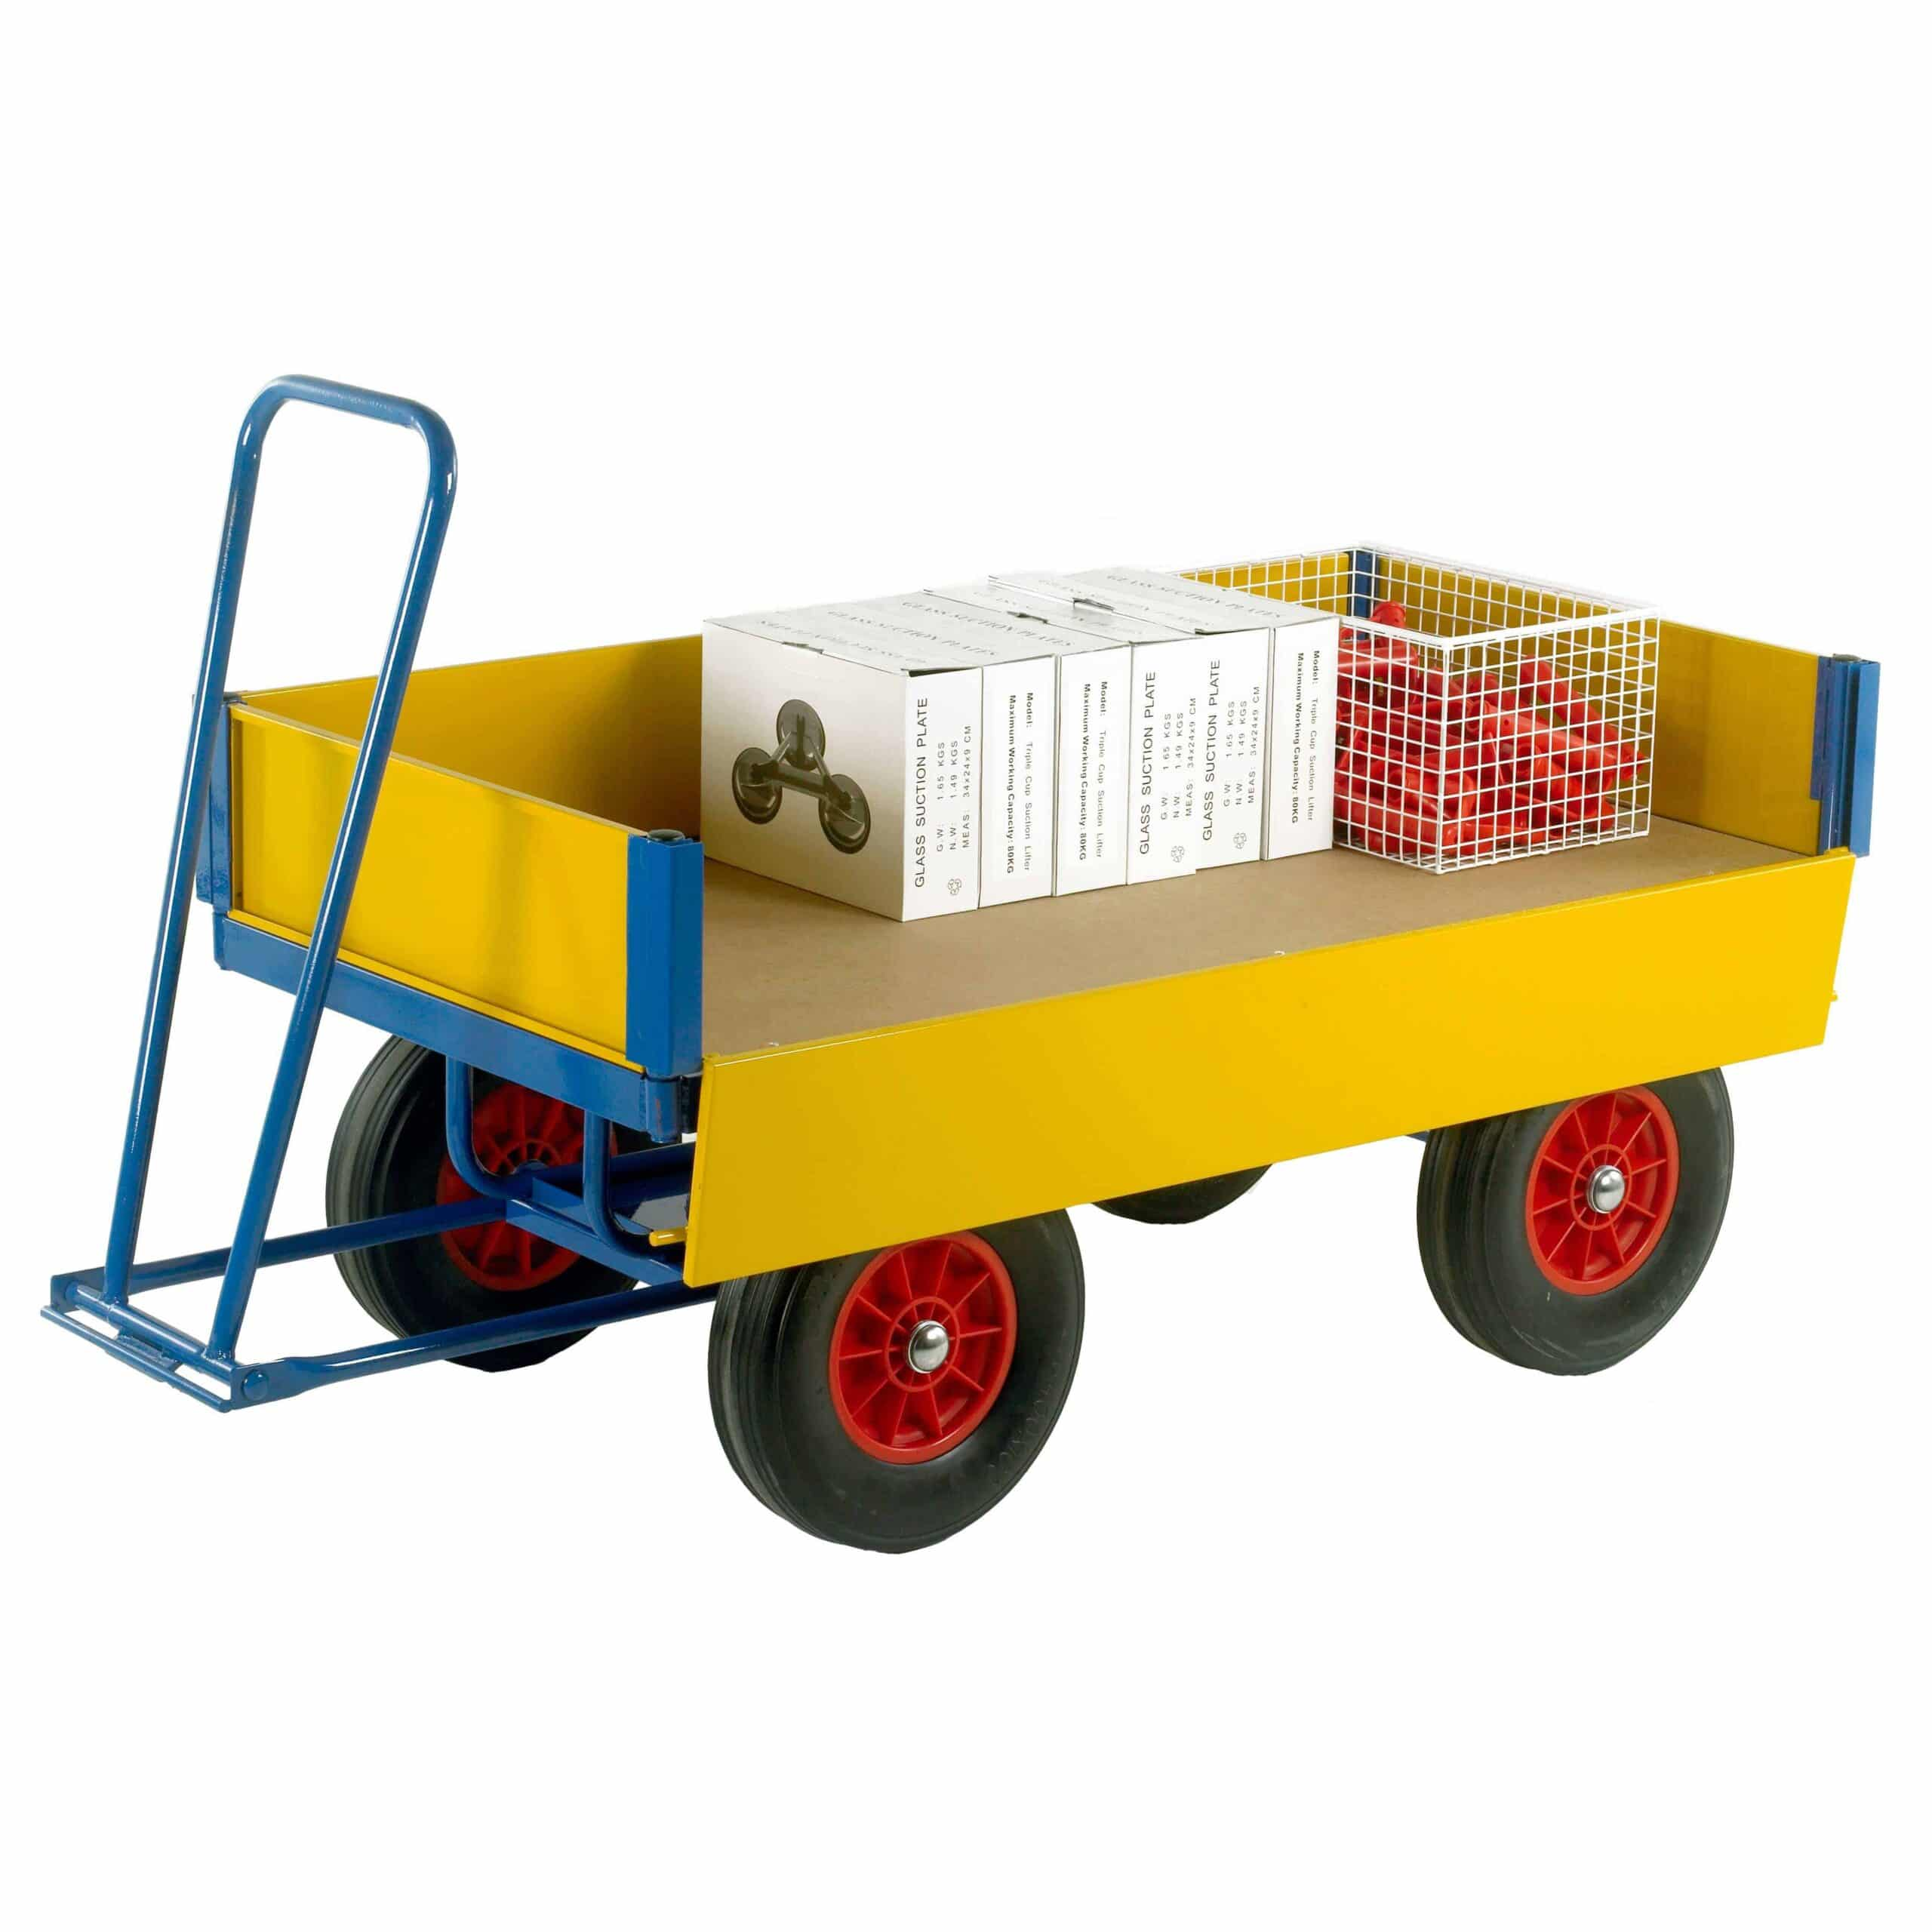 Turntable Platform Trailers with Drop Down Side Panels